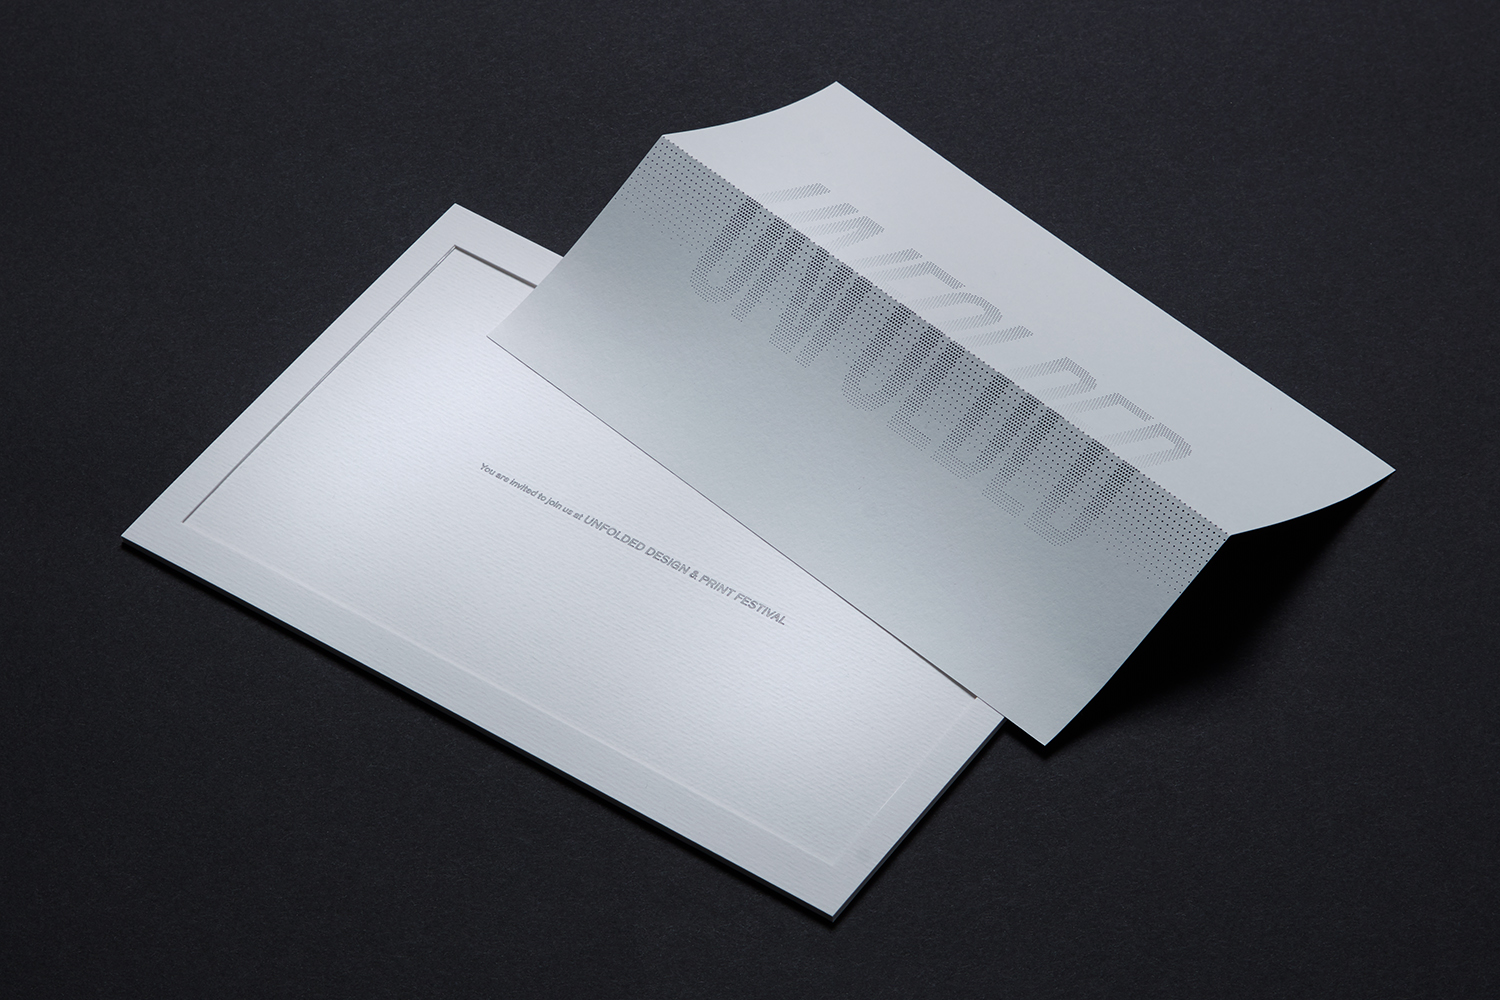 10-Unfolded-Invitation-Design-Print-Commission-Studio-UK-BPO